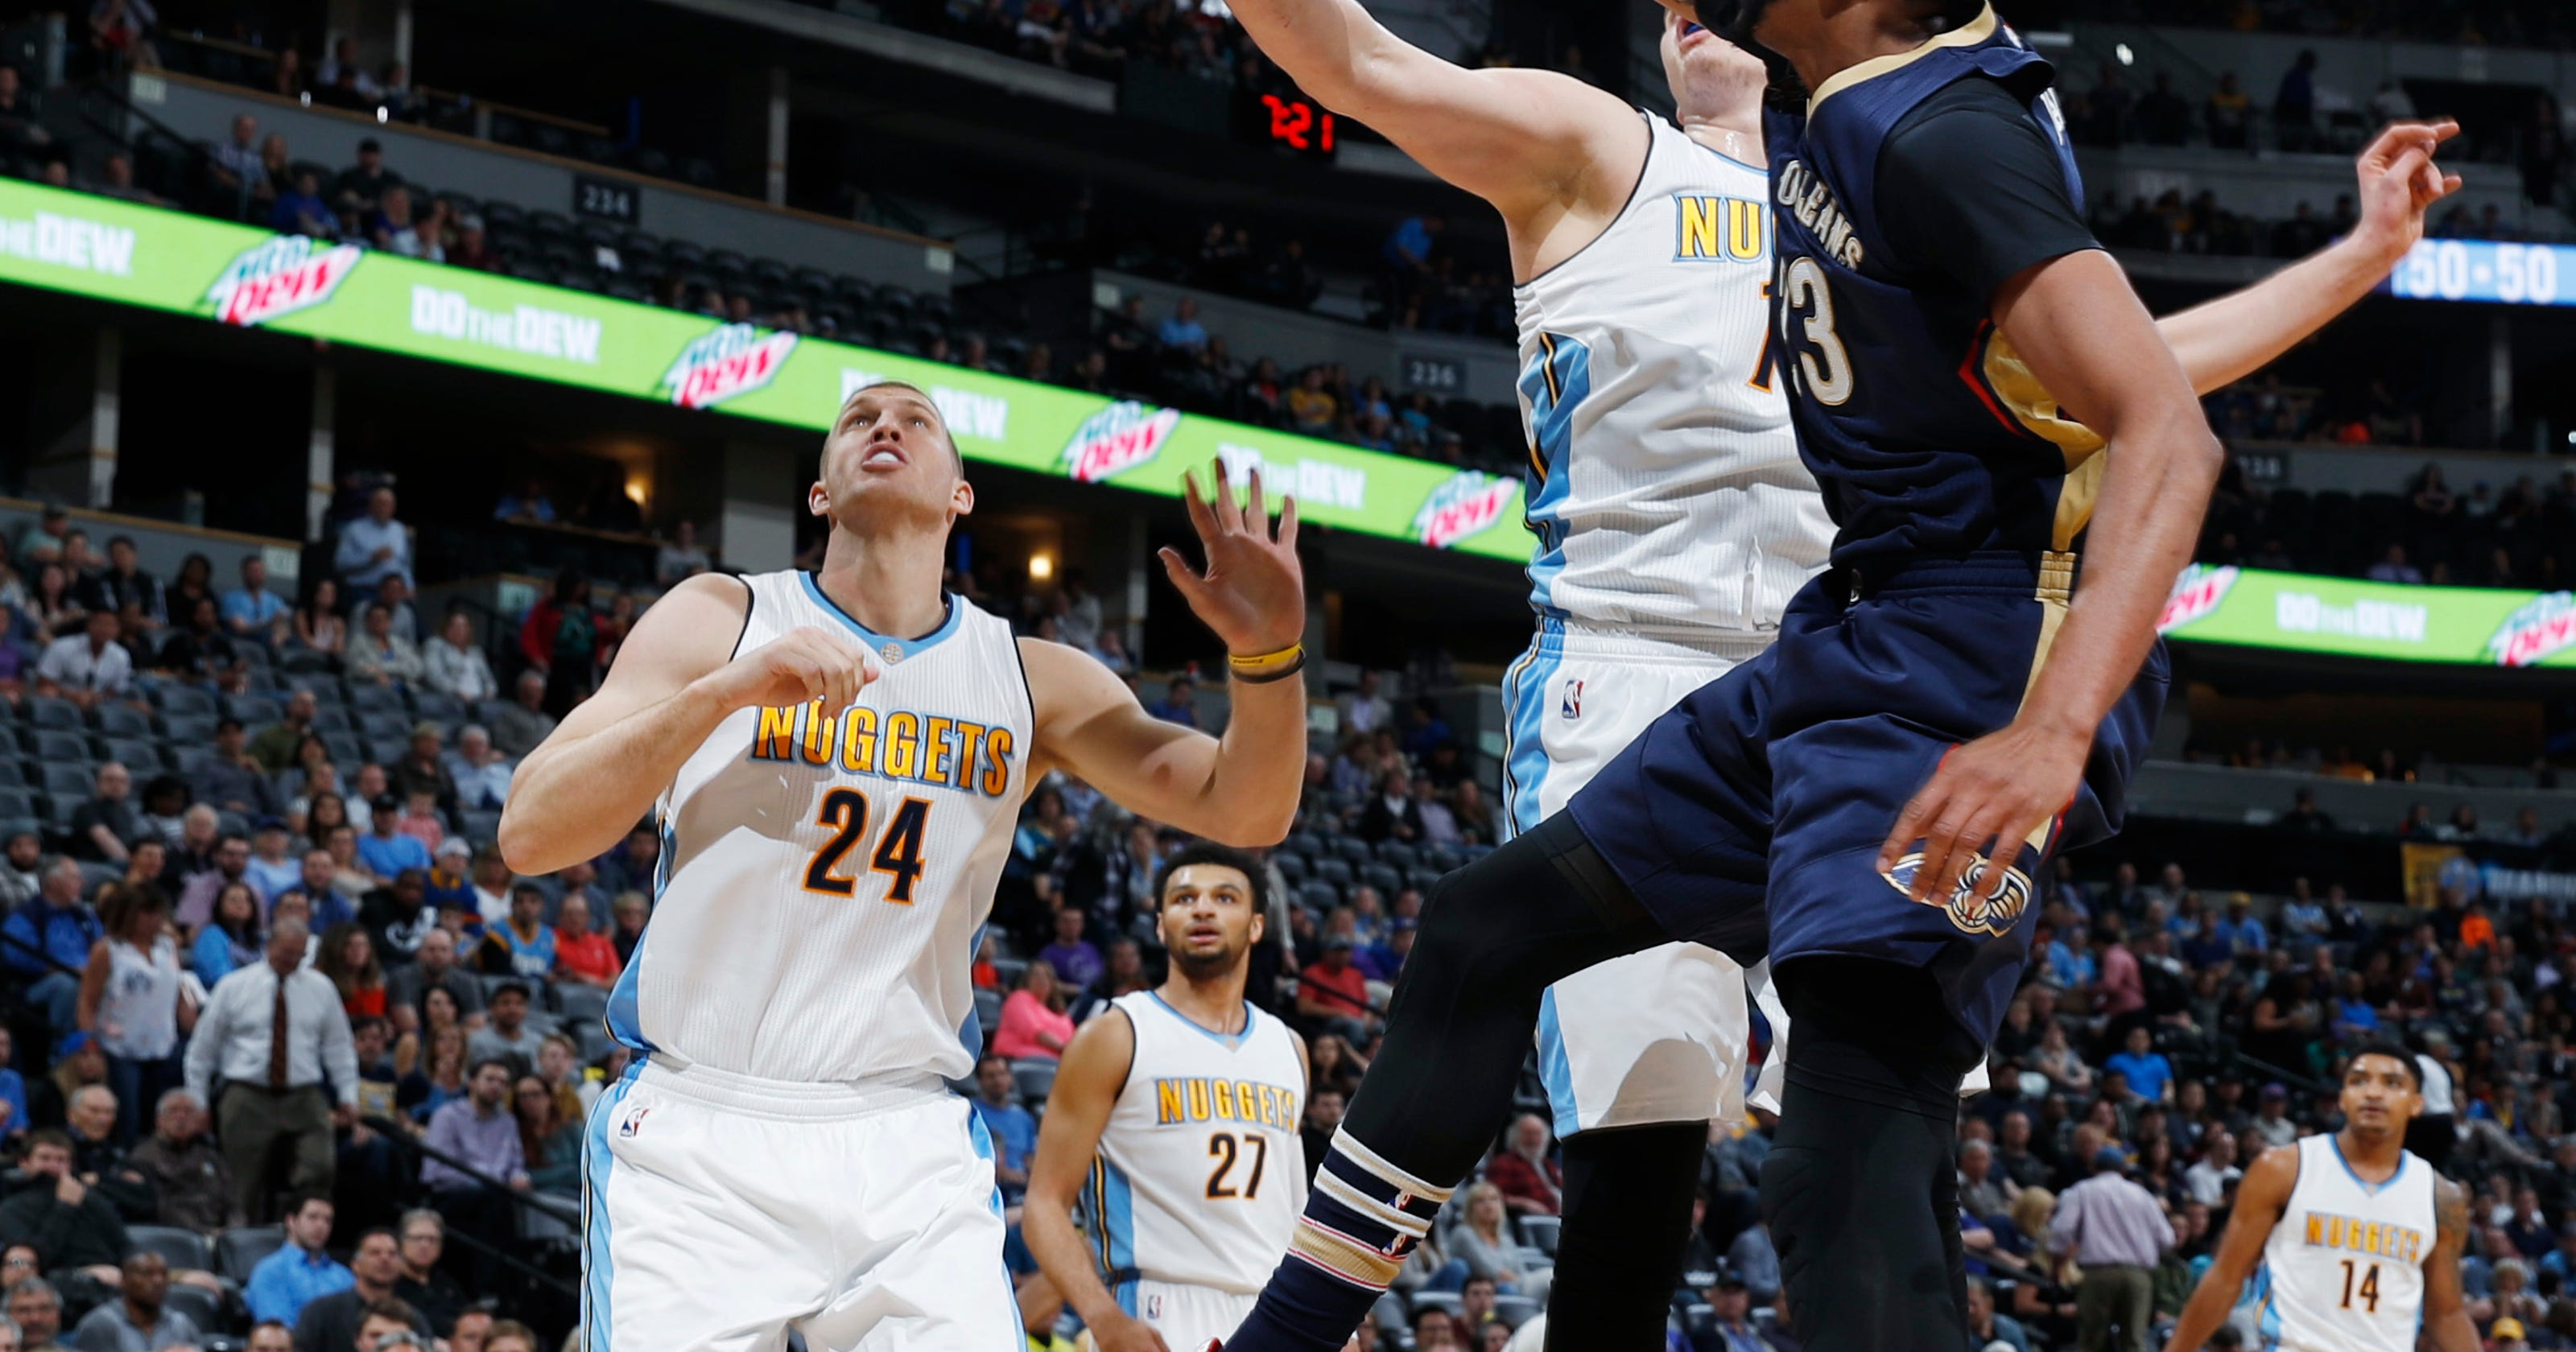 210903c841ec Murray scores career-high 30 as Nuggets trounce Pelicans